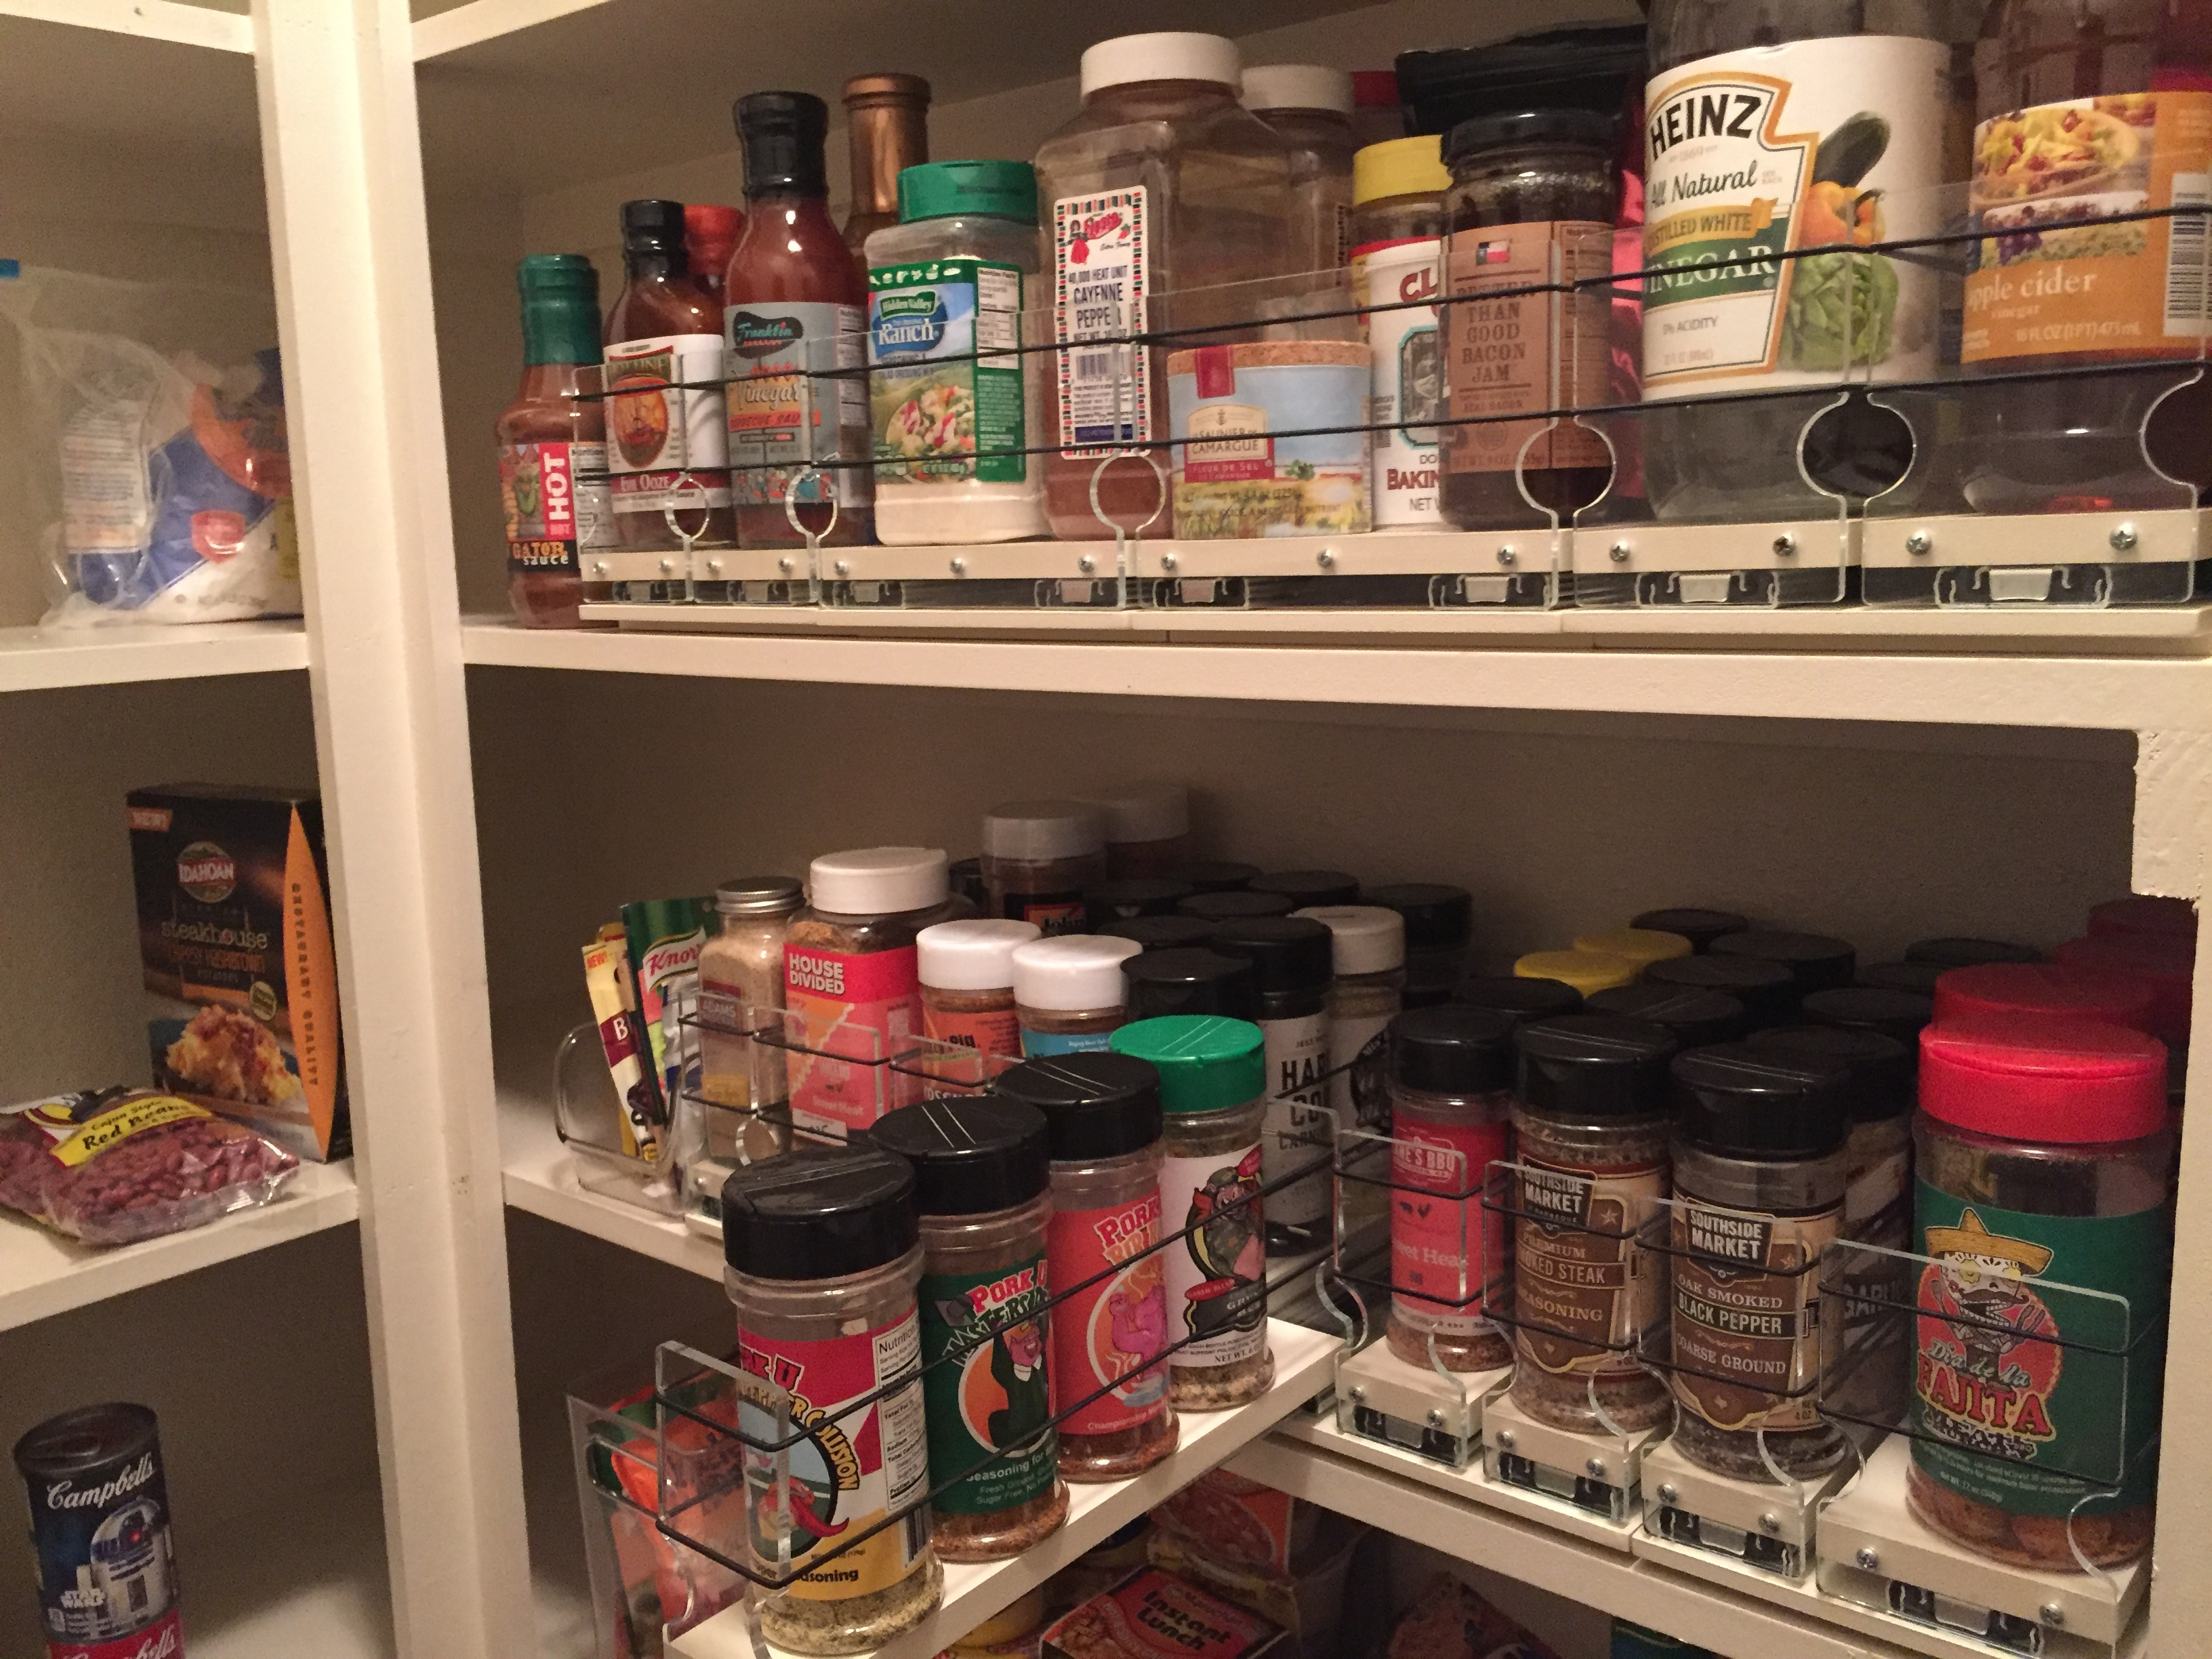 Rub Storage Organization